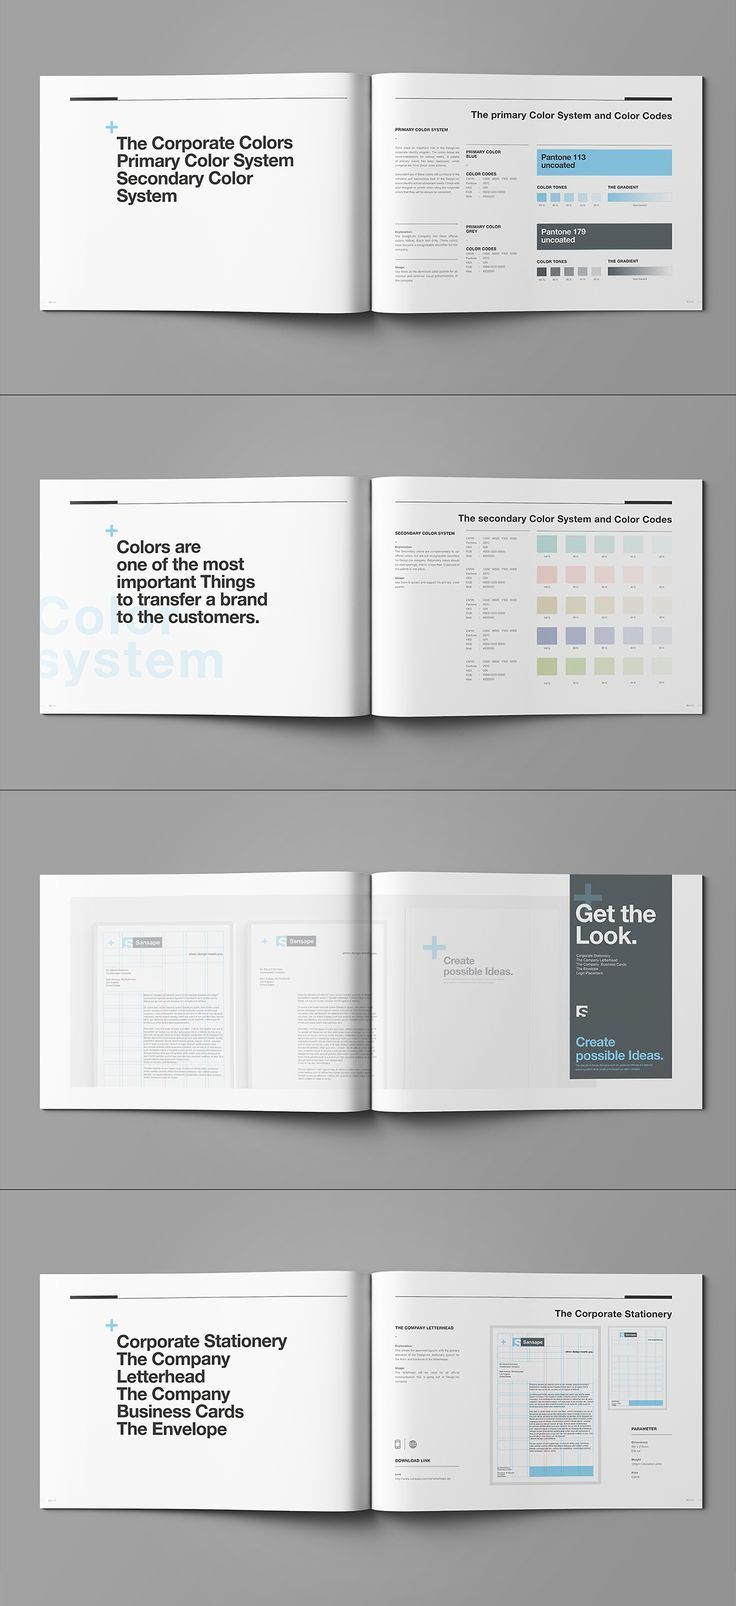 Brand Manual and Identity Template   Design: Layout   Pinterest ...